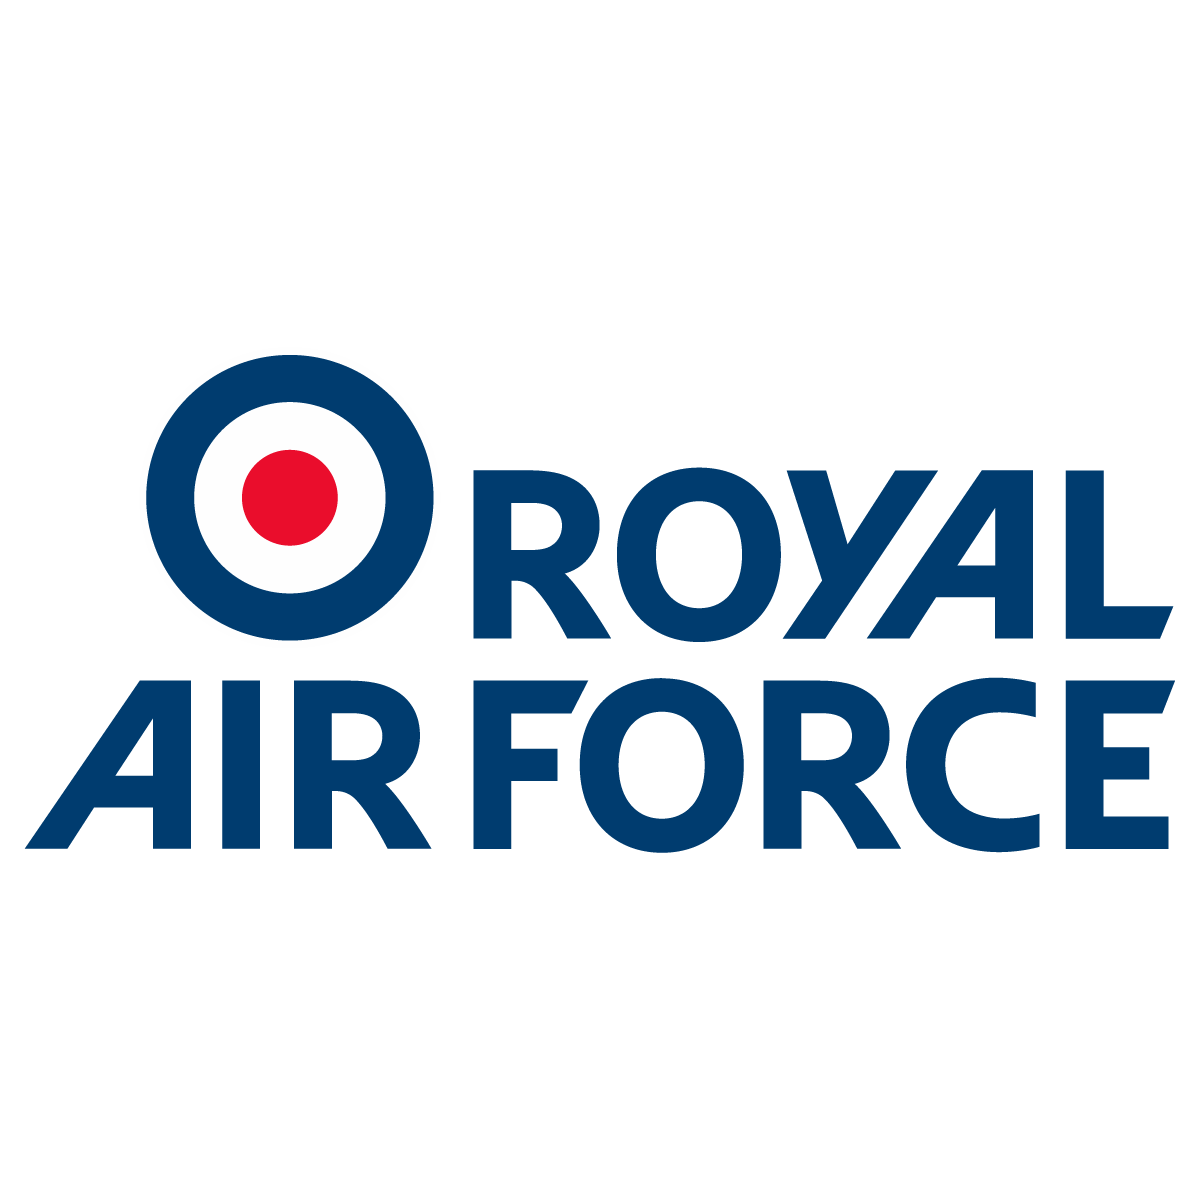 1200x1200 Royal Air Force Uk Logo Vector Free Vector Silhouette Graphics